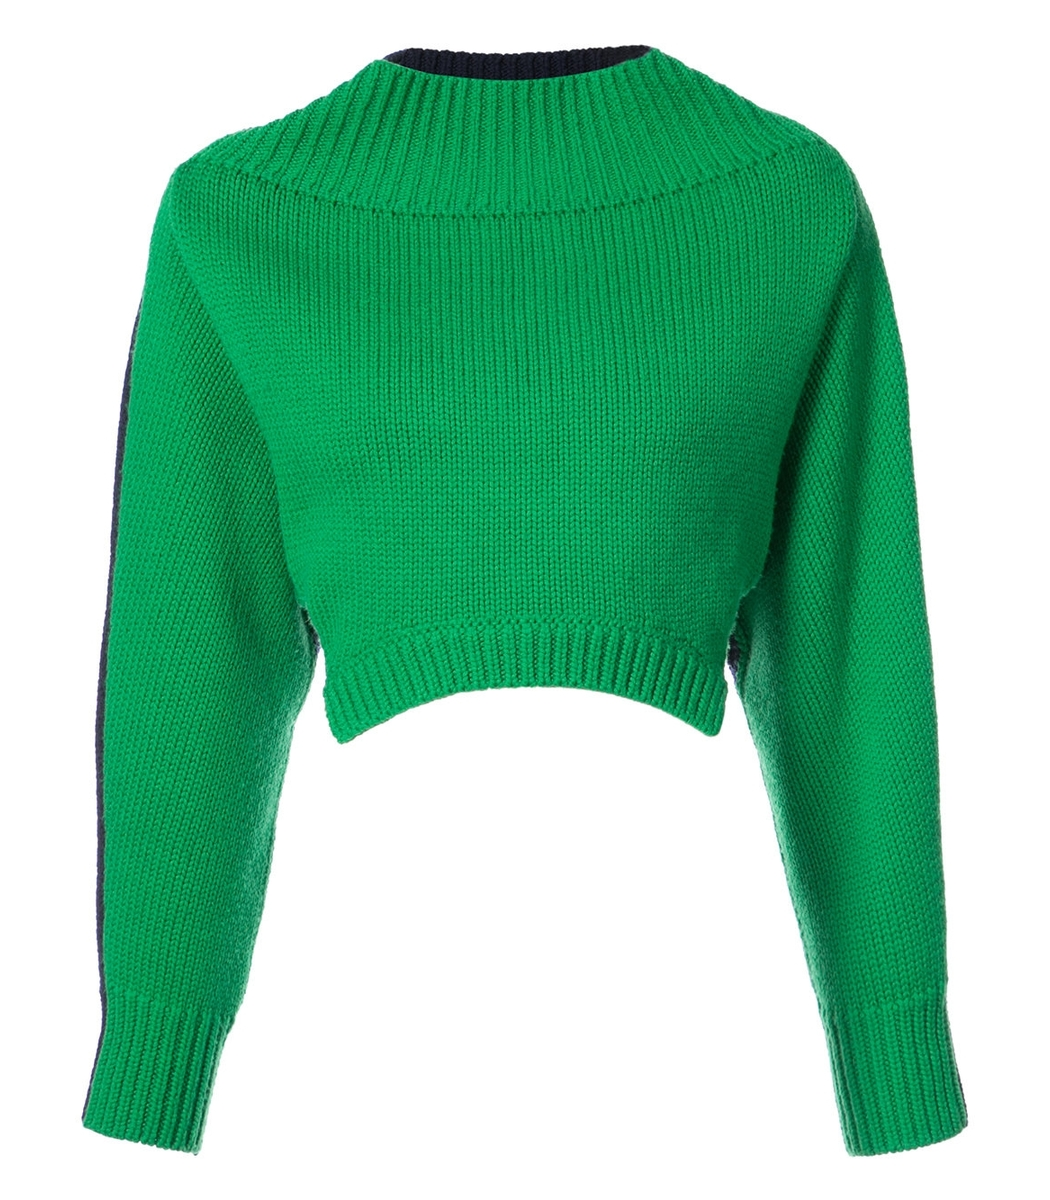 Monse Oversized Cropped Sweater - Green/Navy Boat Neck Sweater